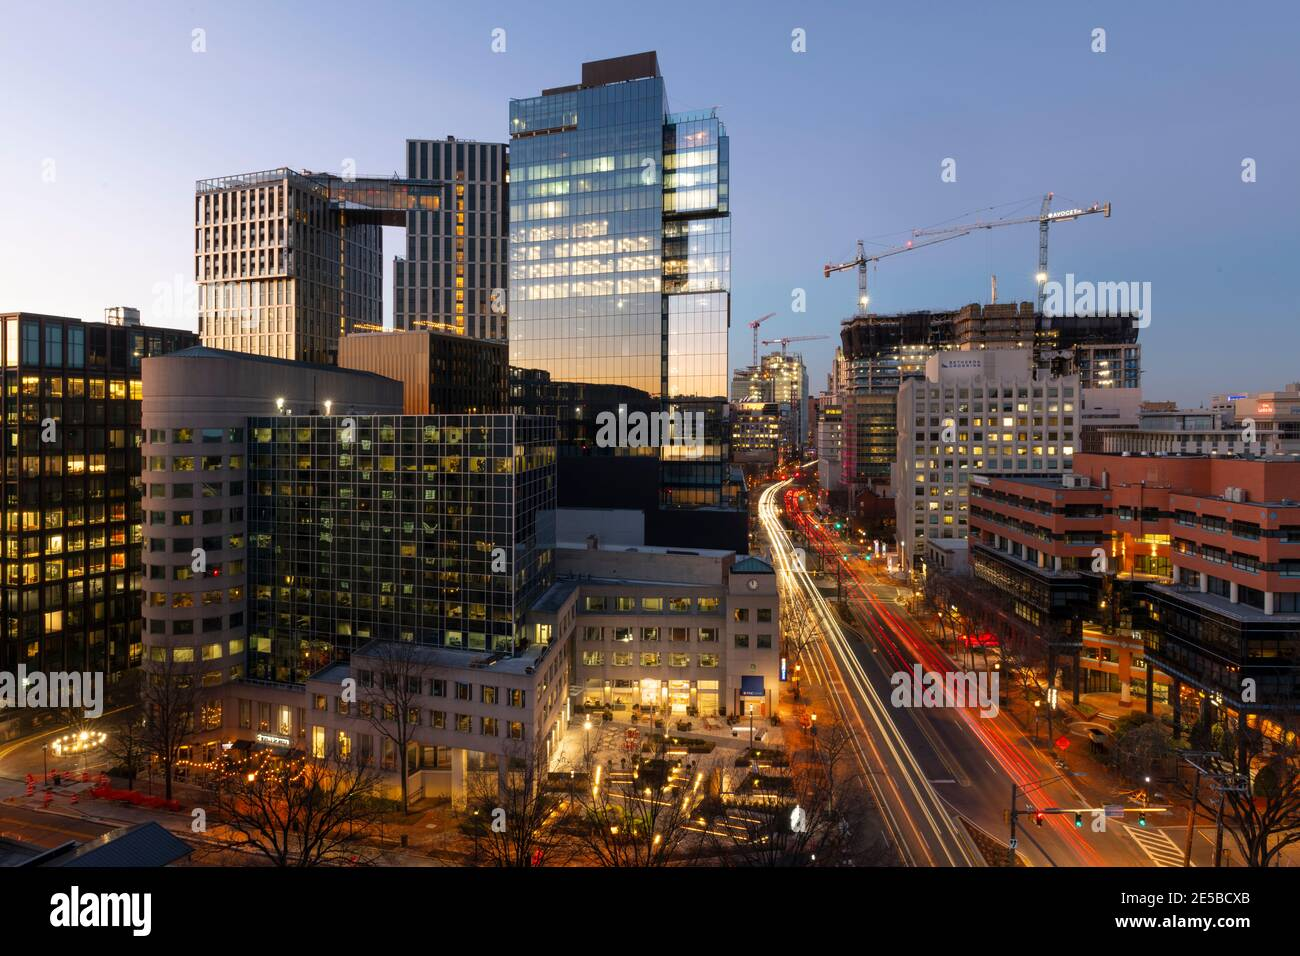 usa-maryland-md-bethesda-skyline-at-evening-with-new-construction-of-office-and-residential-buildings-2E5BCXB.jpg